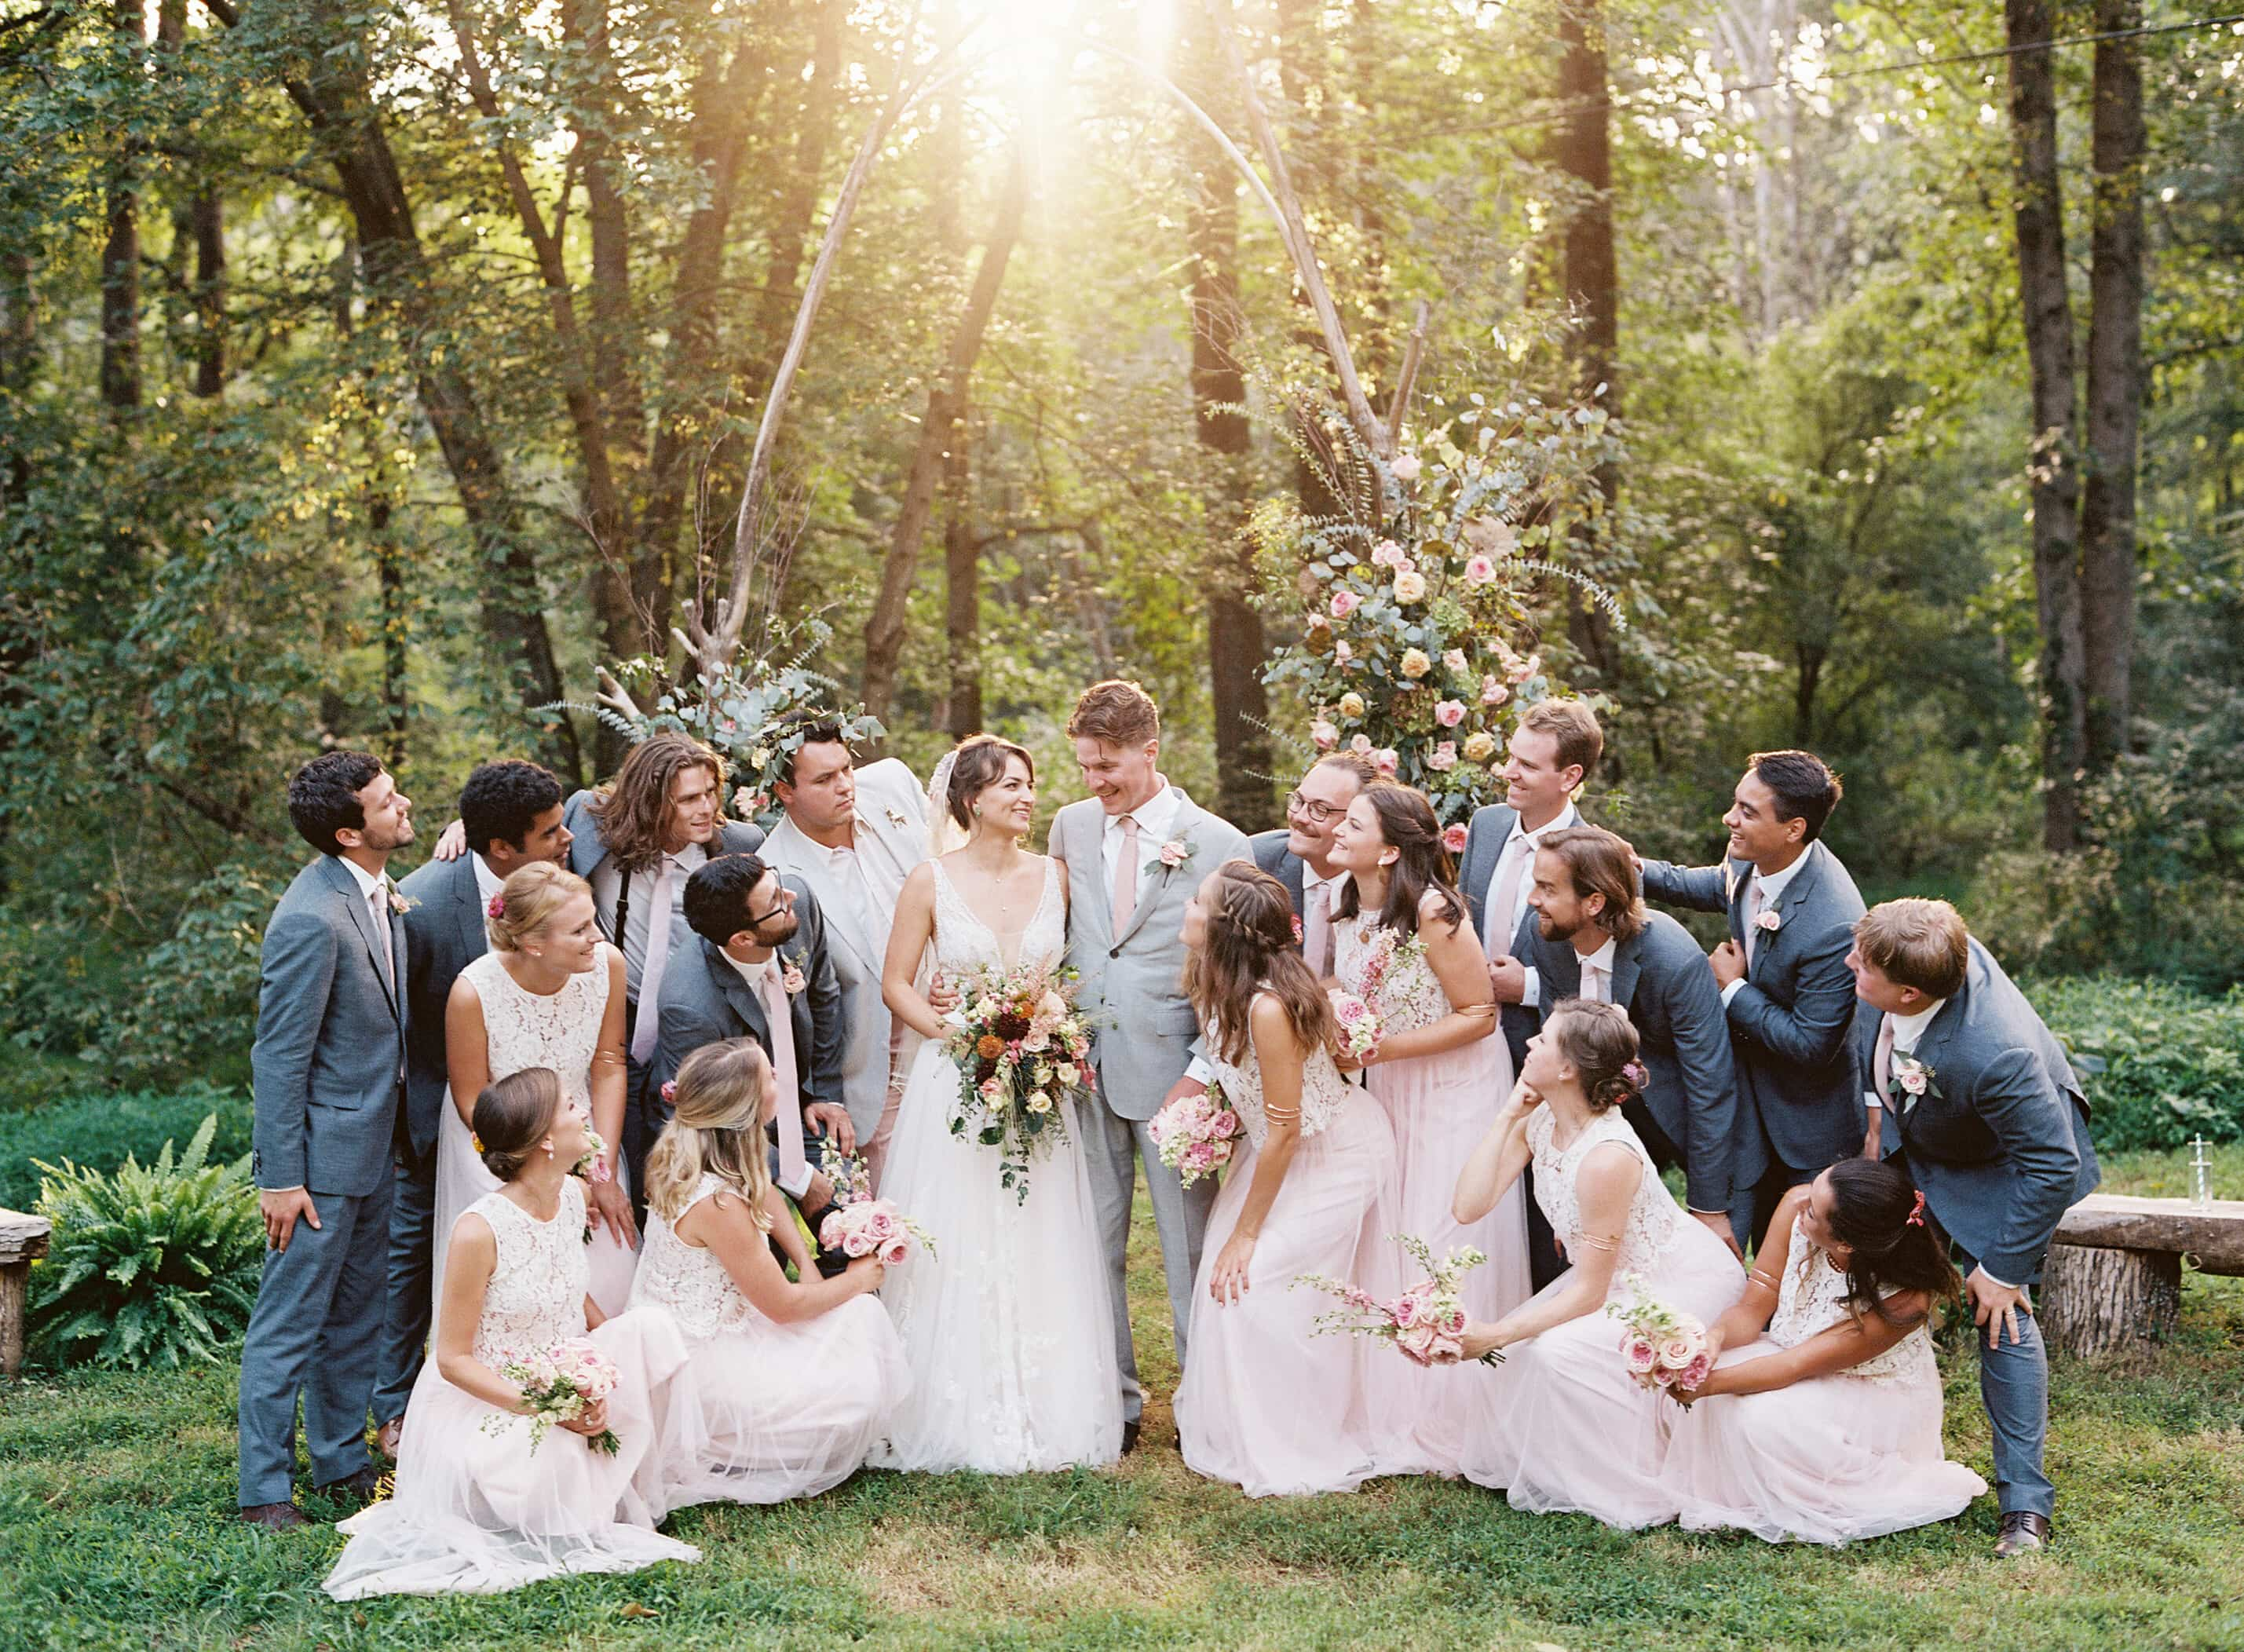 Best of C-VILLE Weddings: Your picks for the area's top